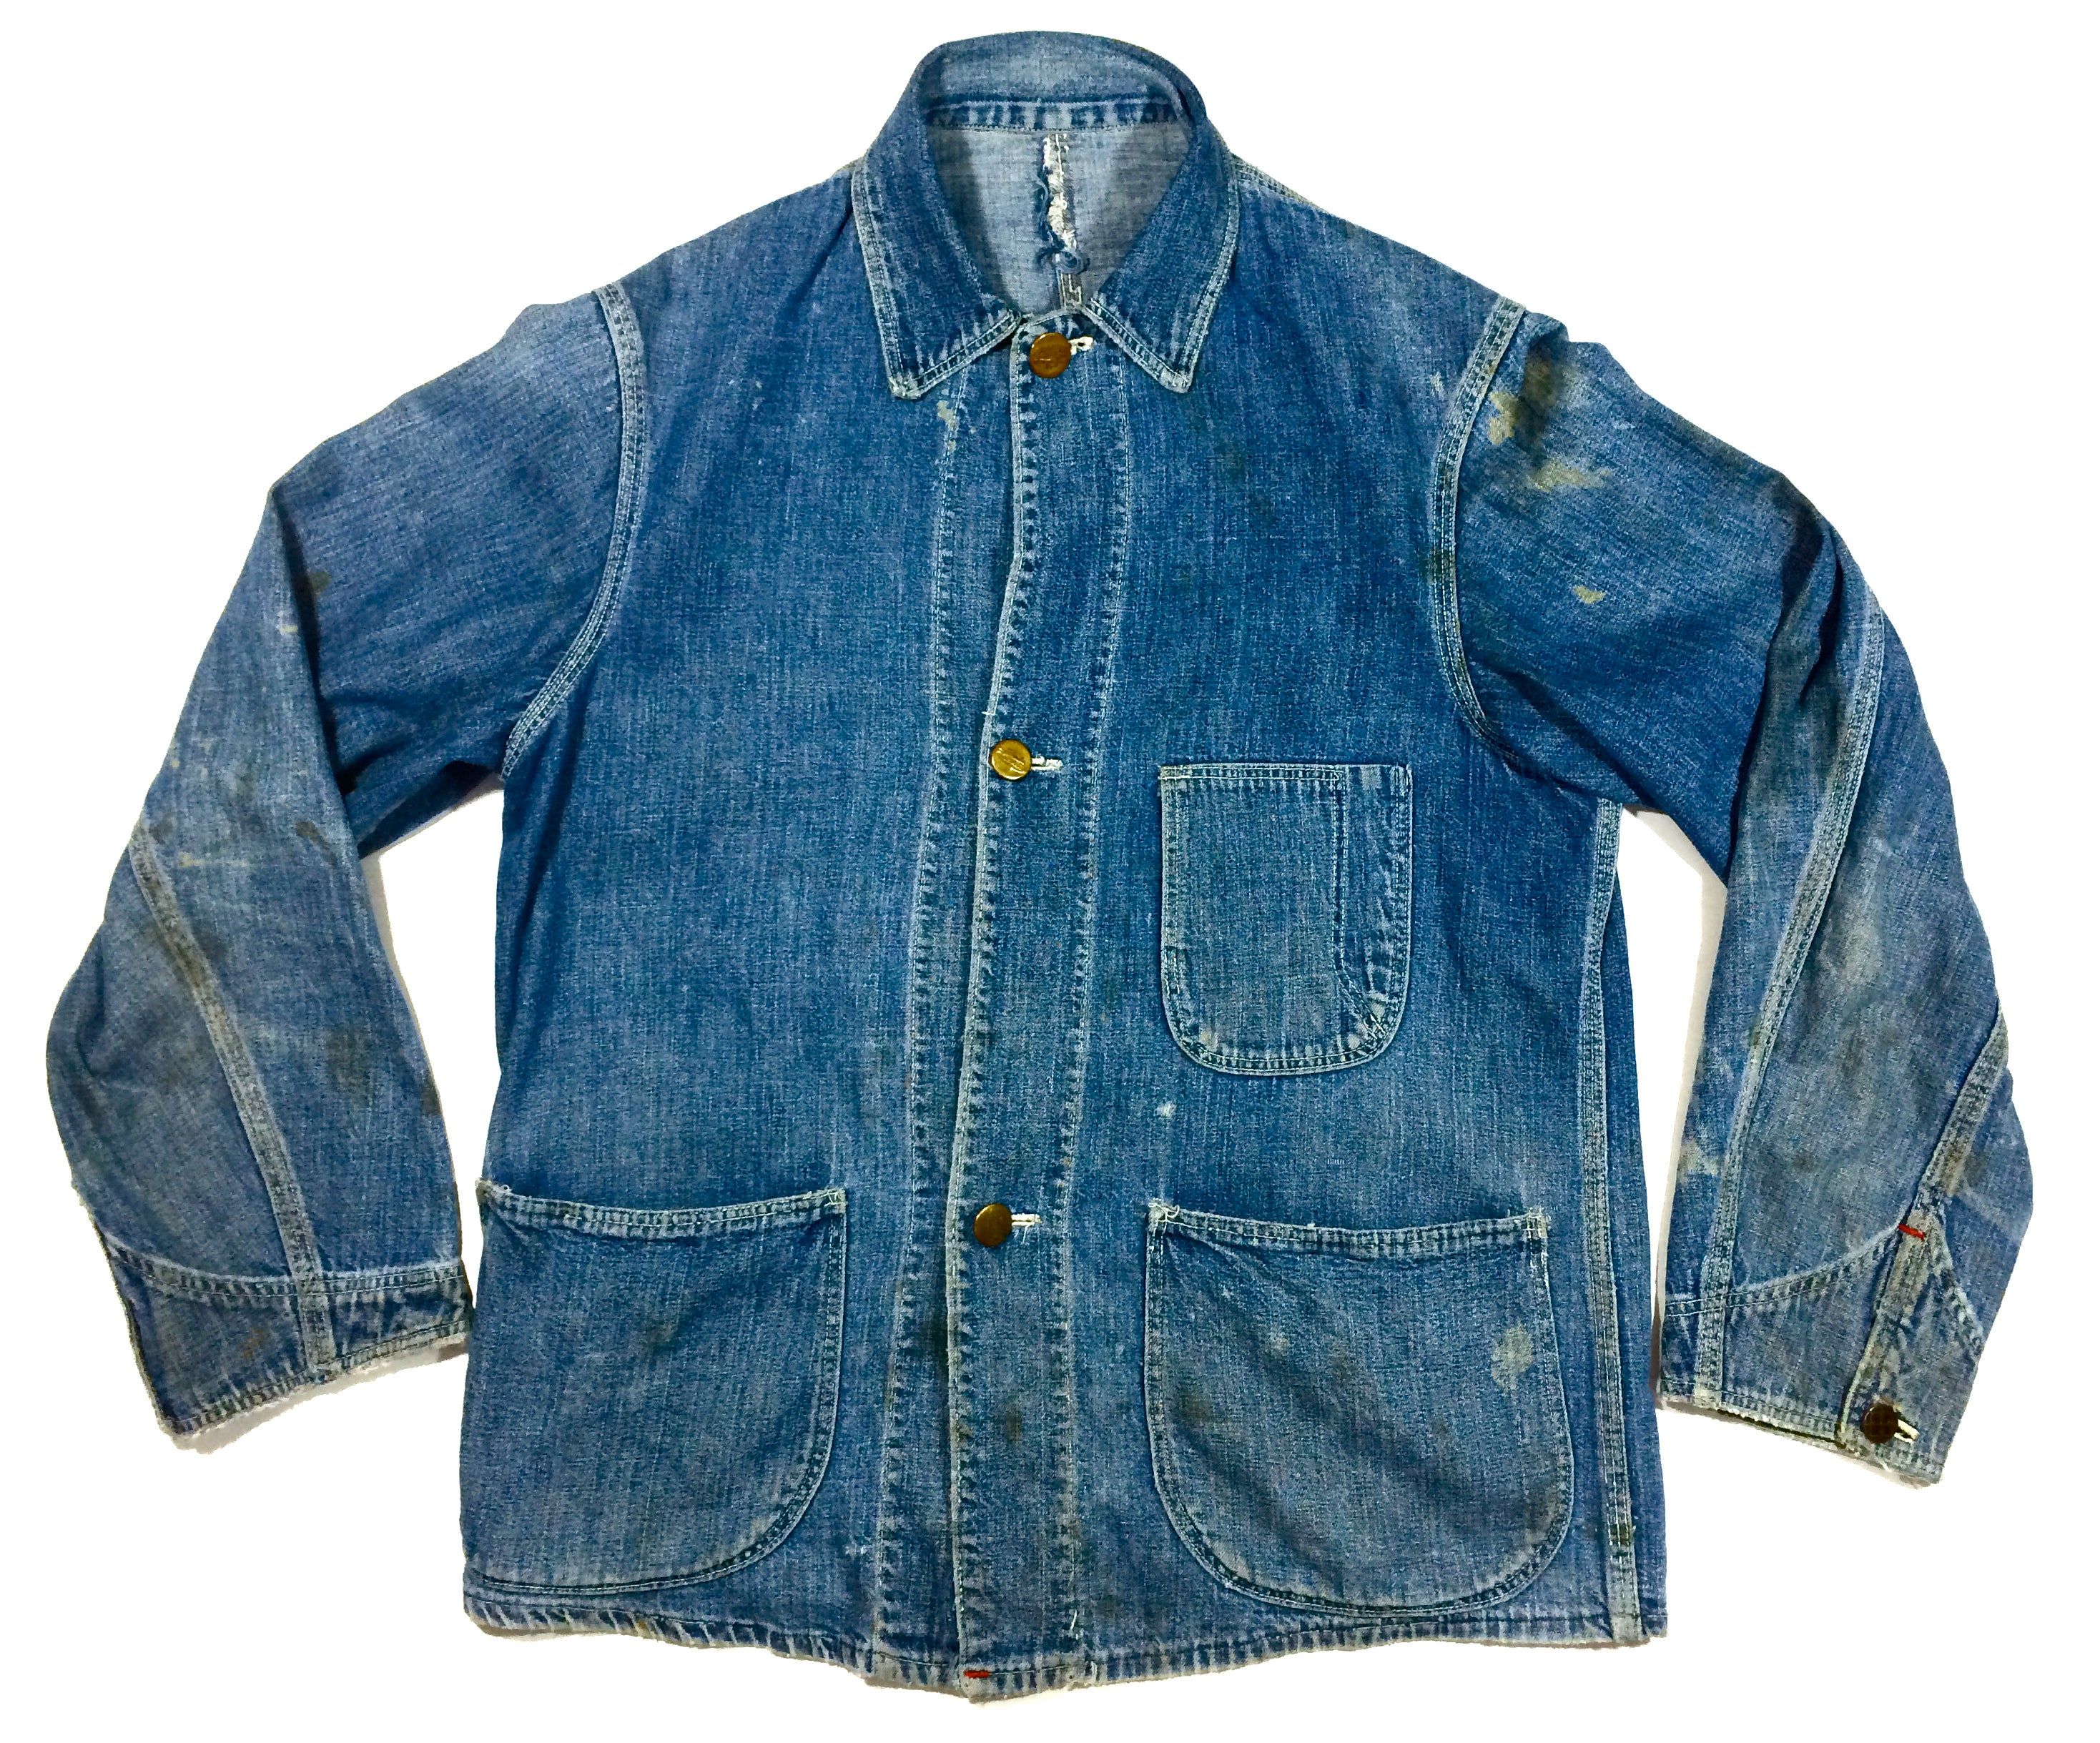 Image of 1930's vintage chore jacket with locomotive change buttons